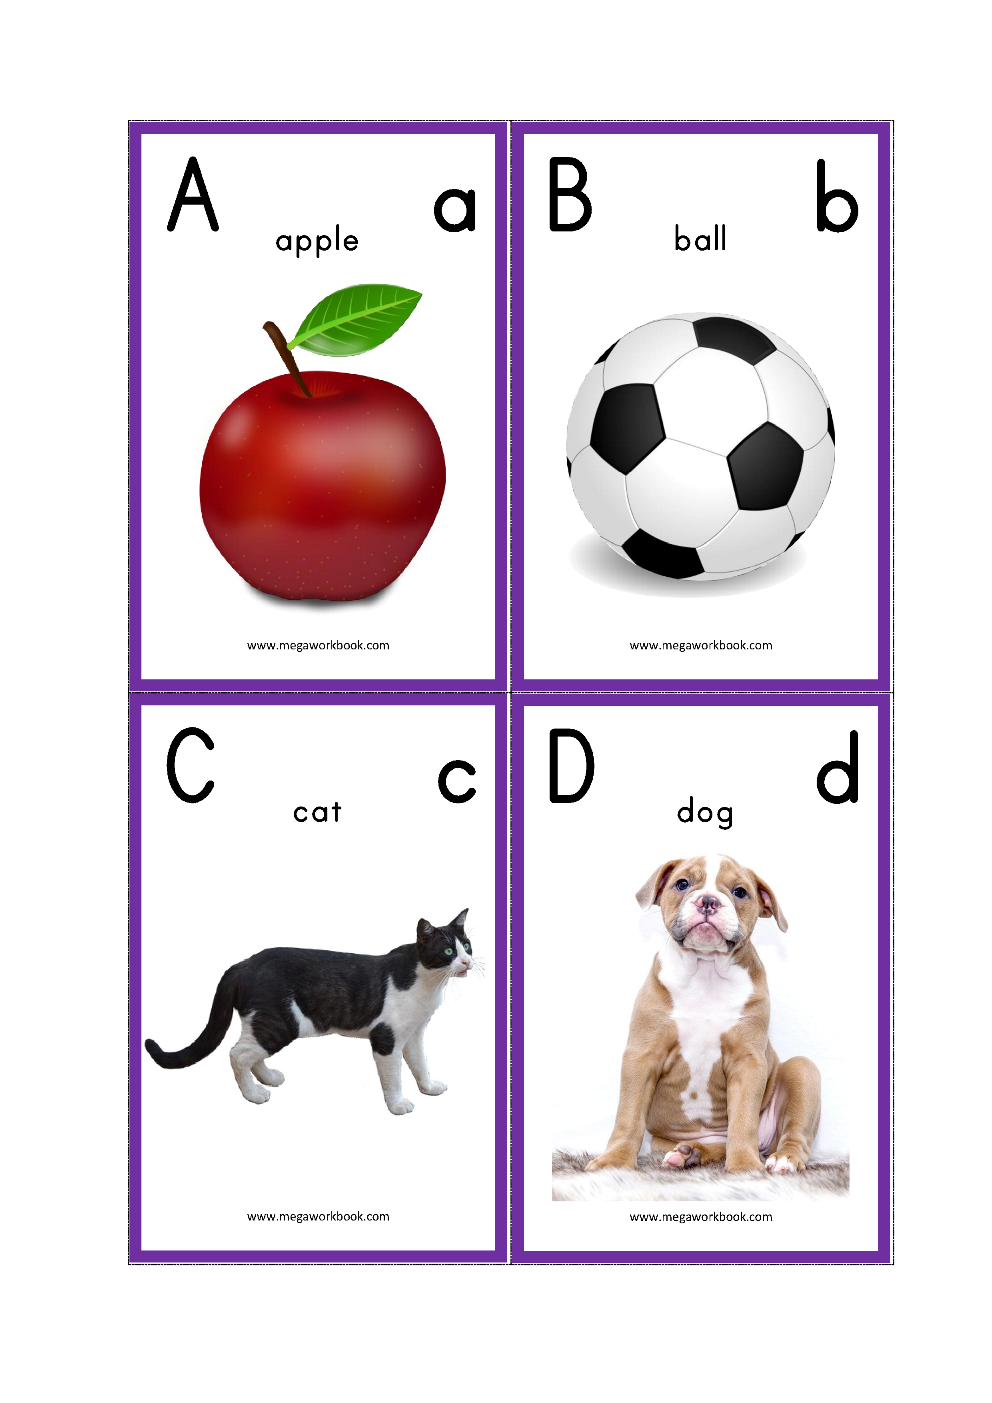 photo regarding Free Printable Abc Flash Cards called Alphabet Flash Playing cards - ABC Flash Playing cards - Letter Flashcards